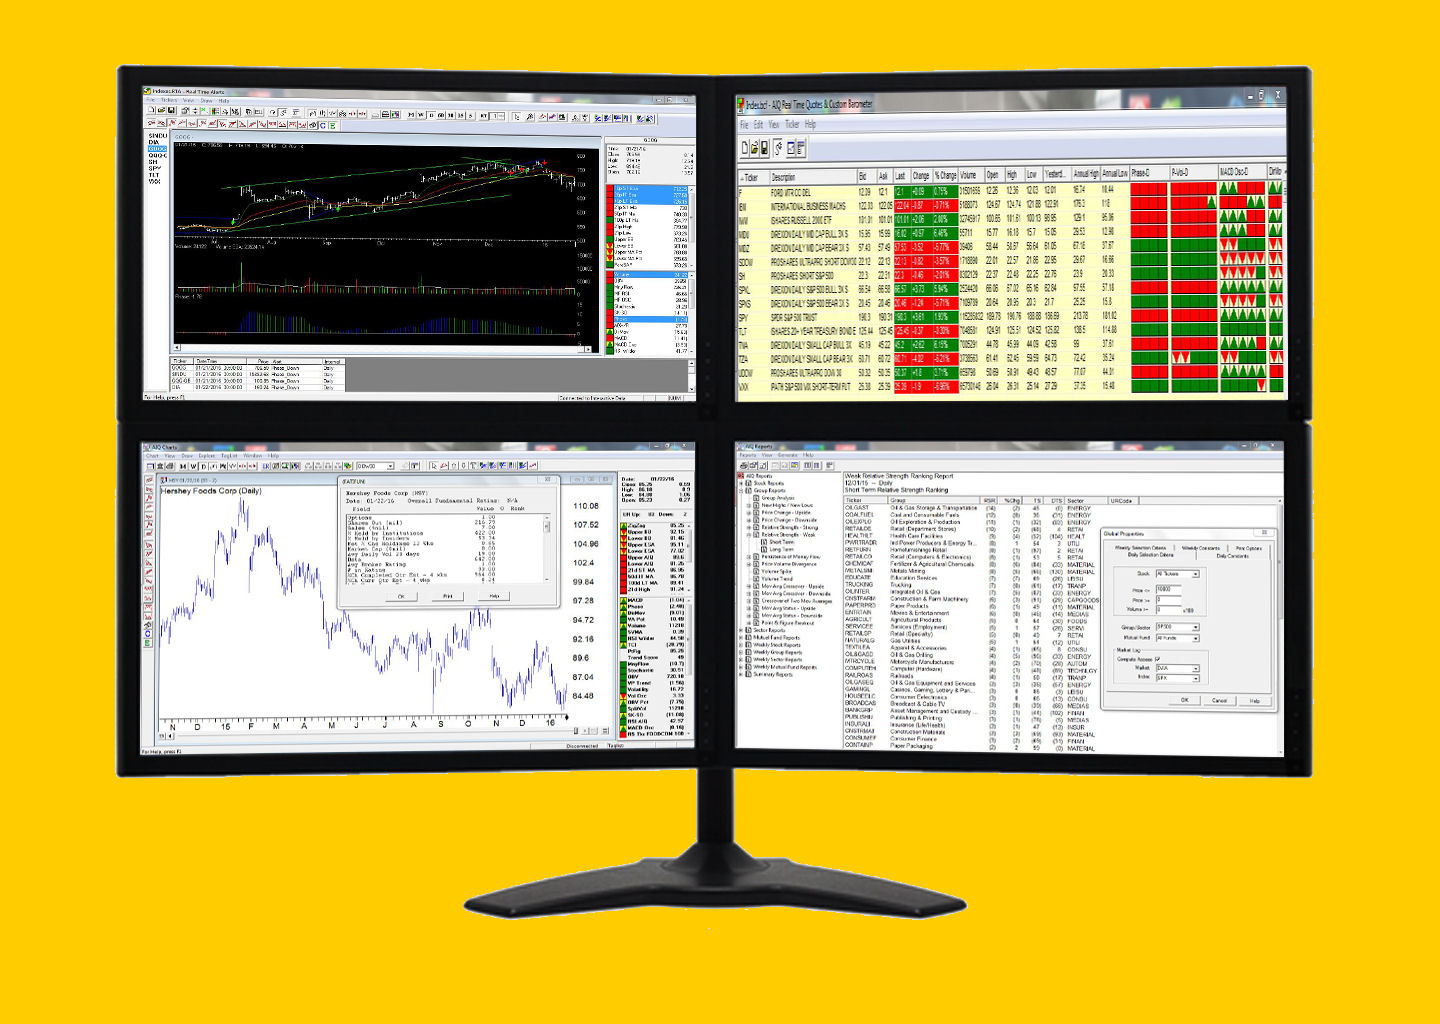 Iq trading software